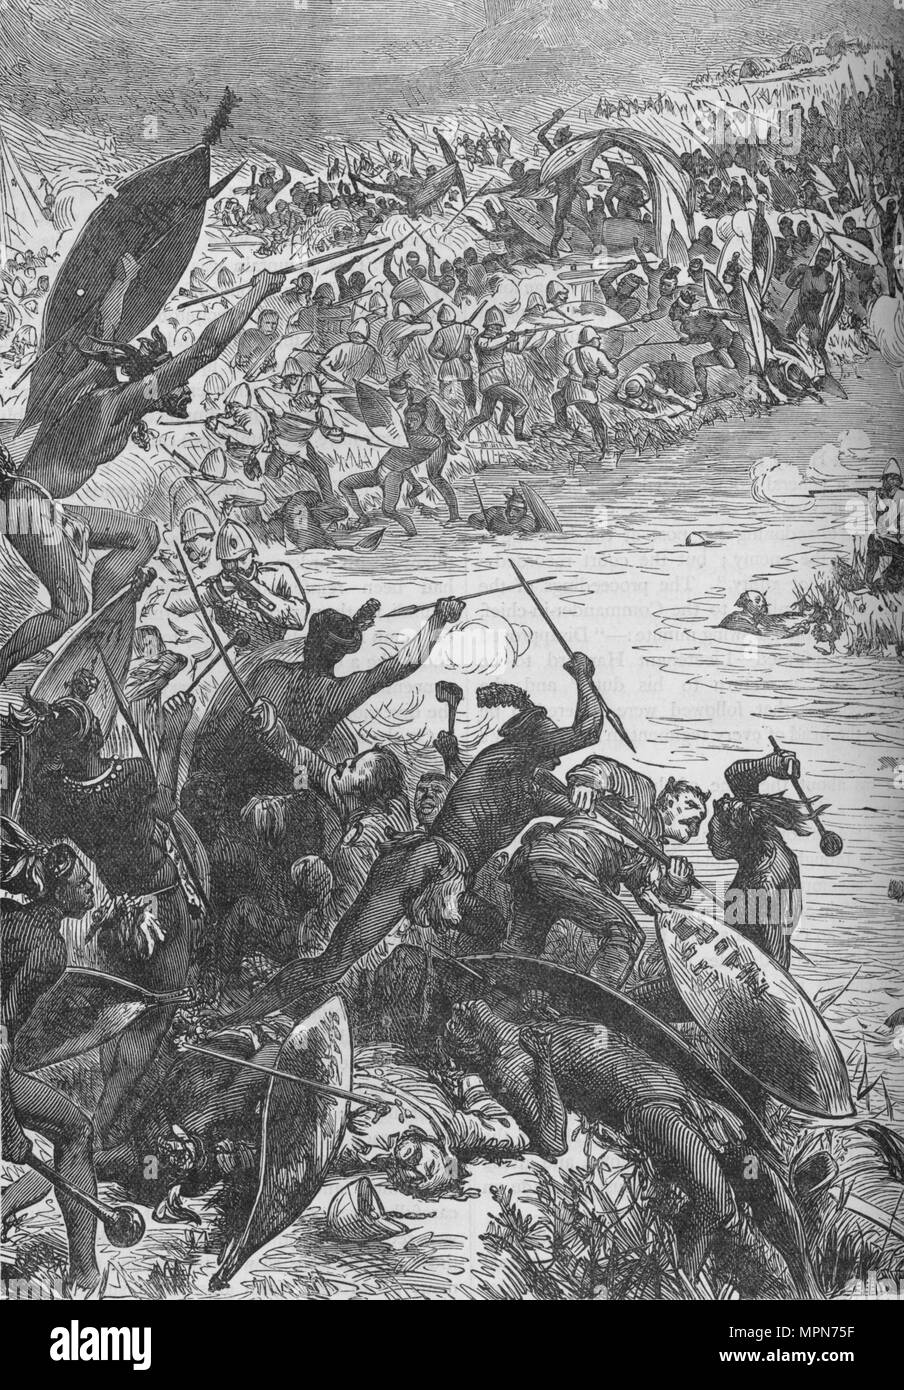 'Attack of the Zulus on the Escort of the Eightieth Regiment at the Intombe River', 1879, (c1880). Artist: Unknown. - Stock Image